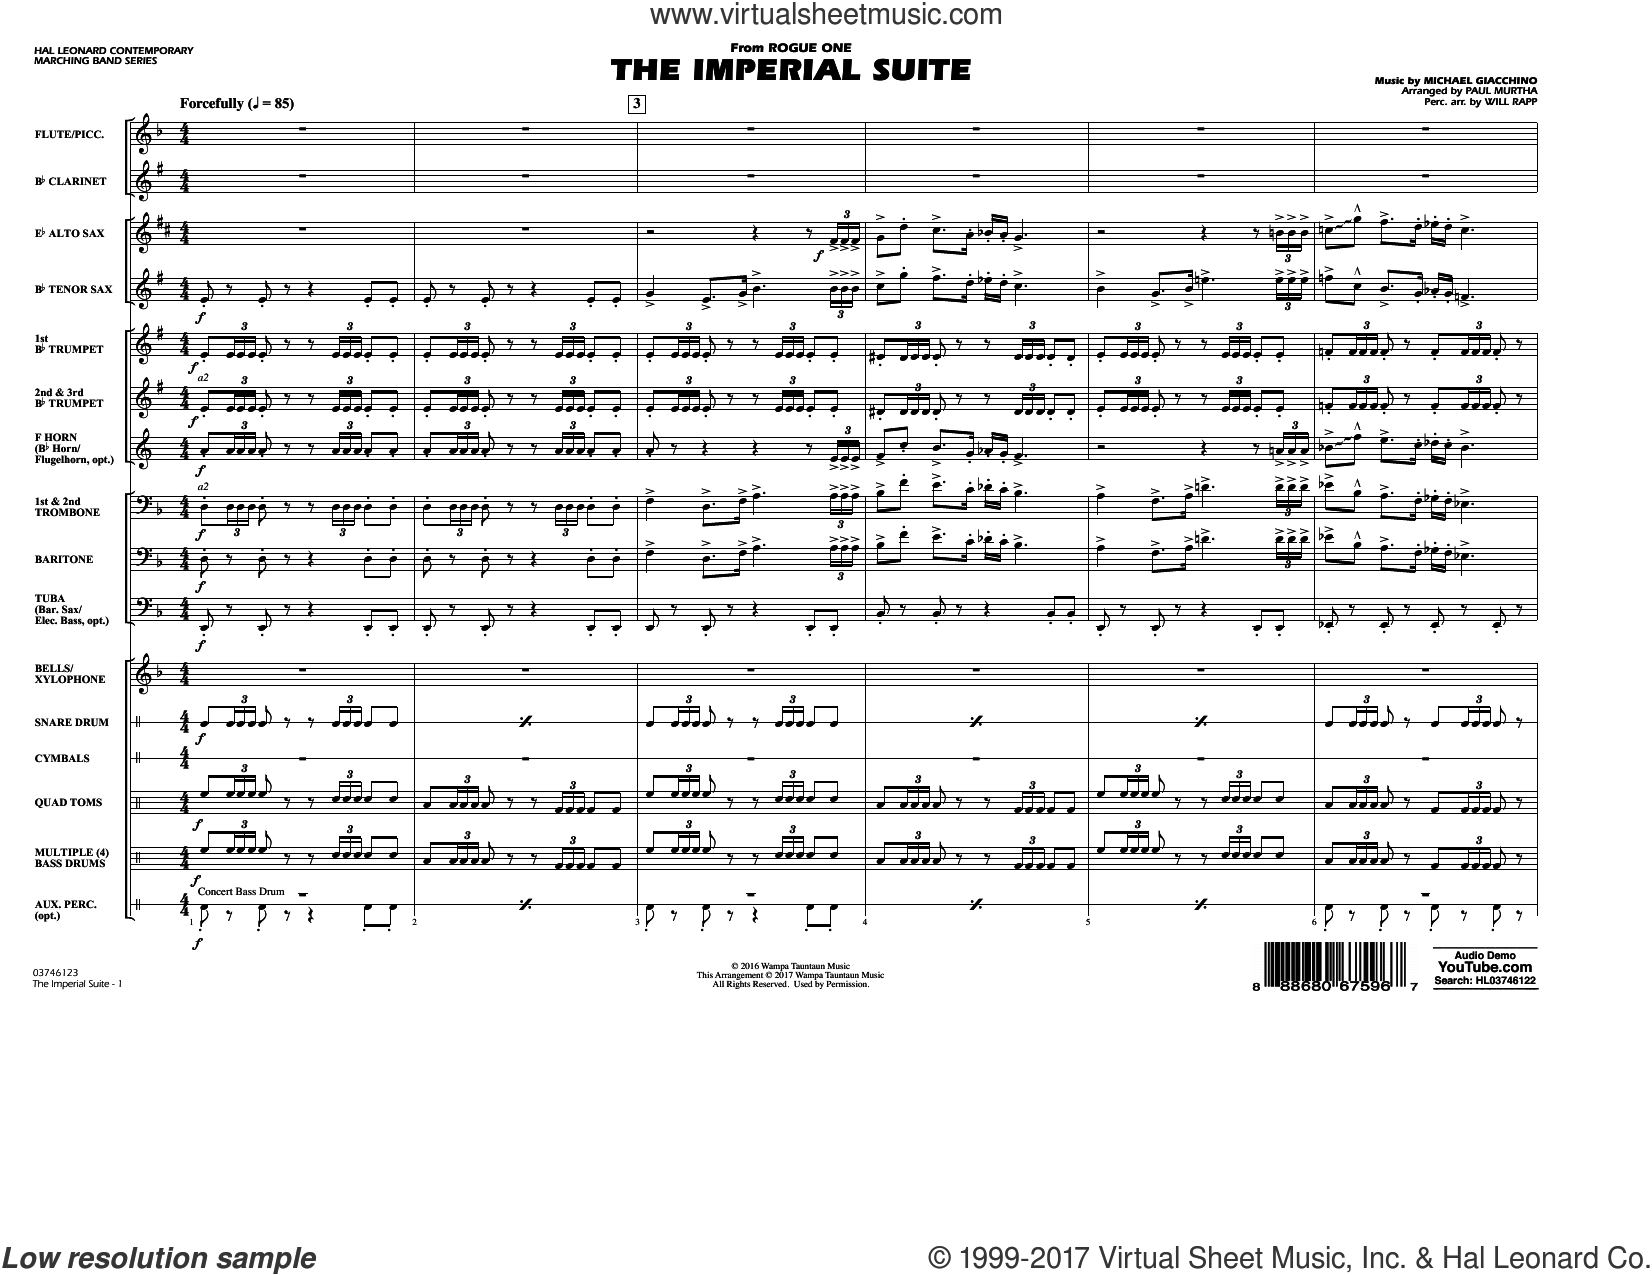 Murtha - The Imperial Suite (from Rogue One: A Star Wars Story) sheet music  (complete collection) for marching band